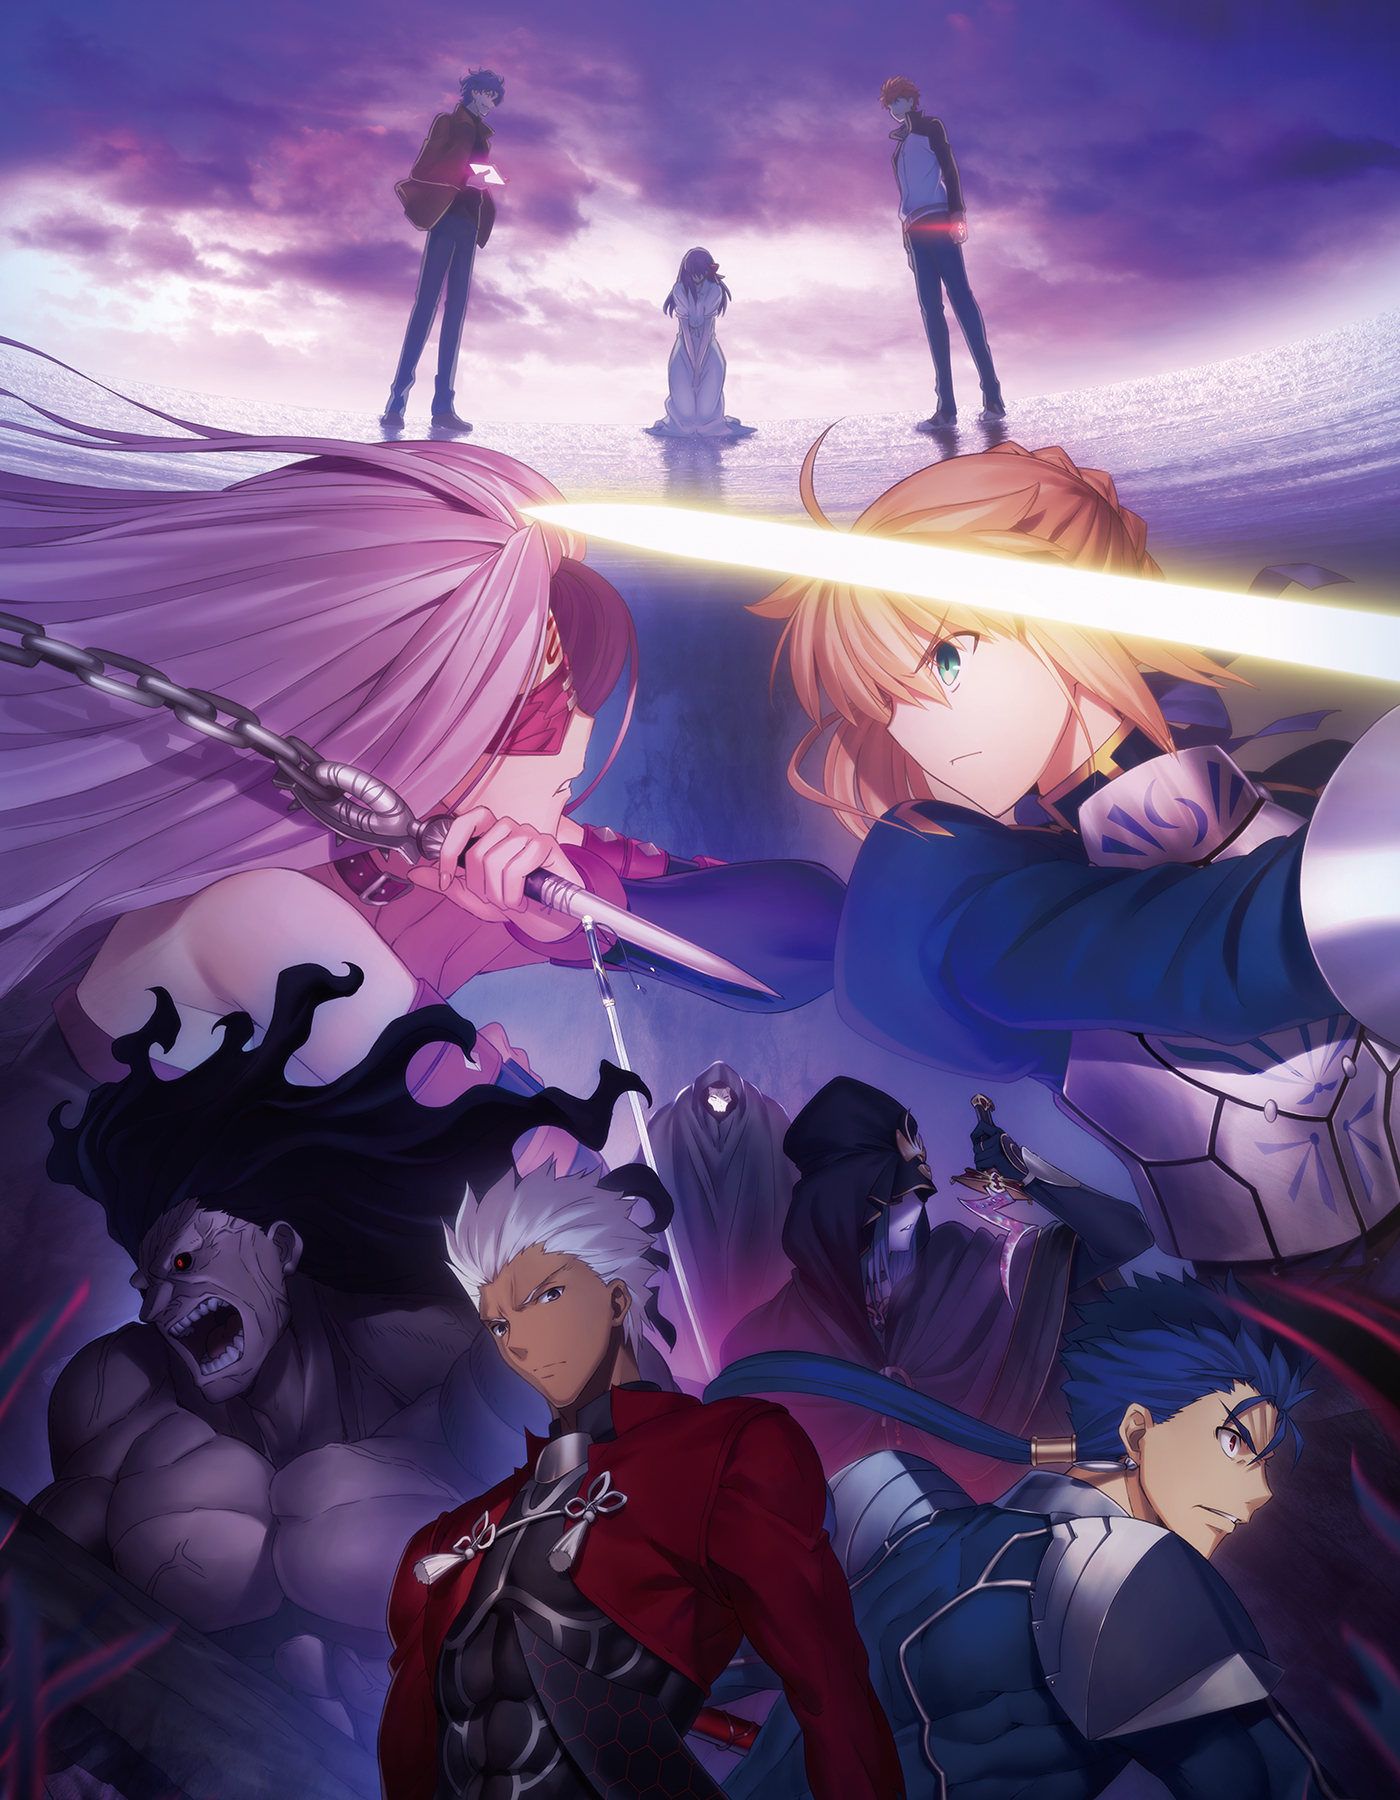 Fate Series Images HD Wallpaper And Background Photos